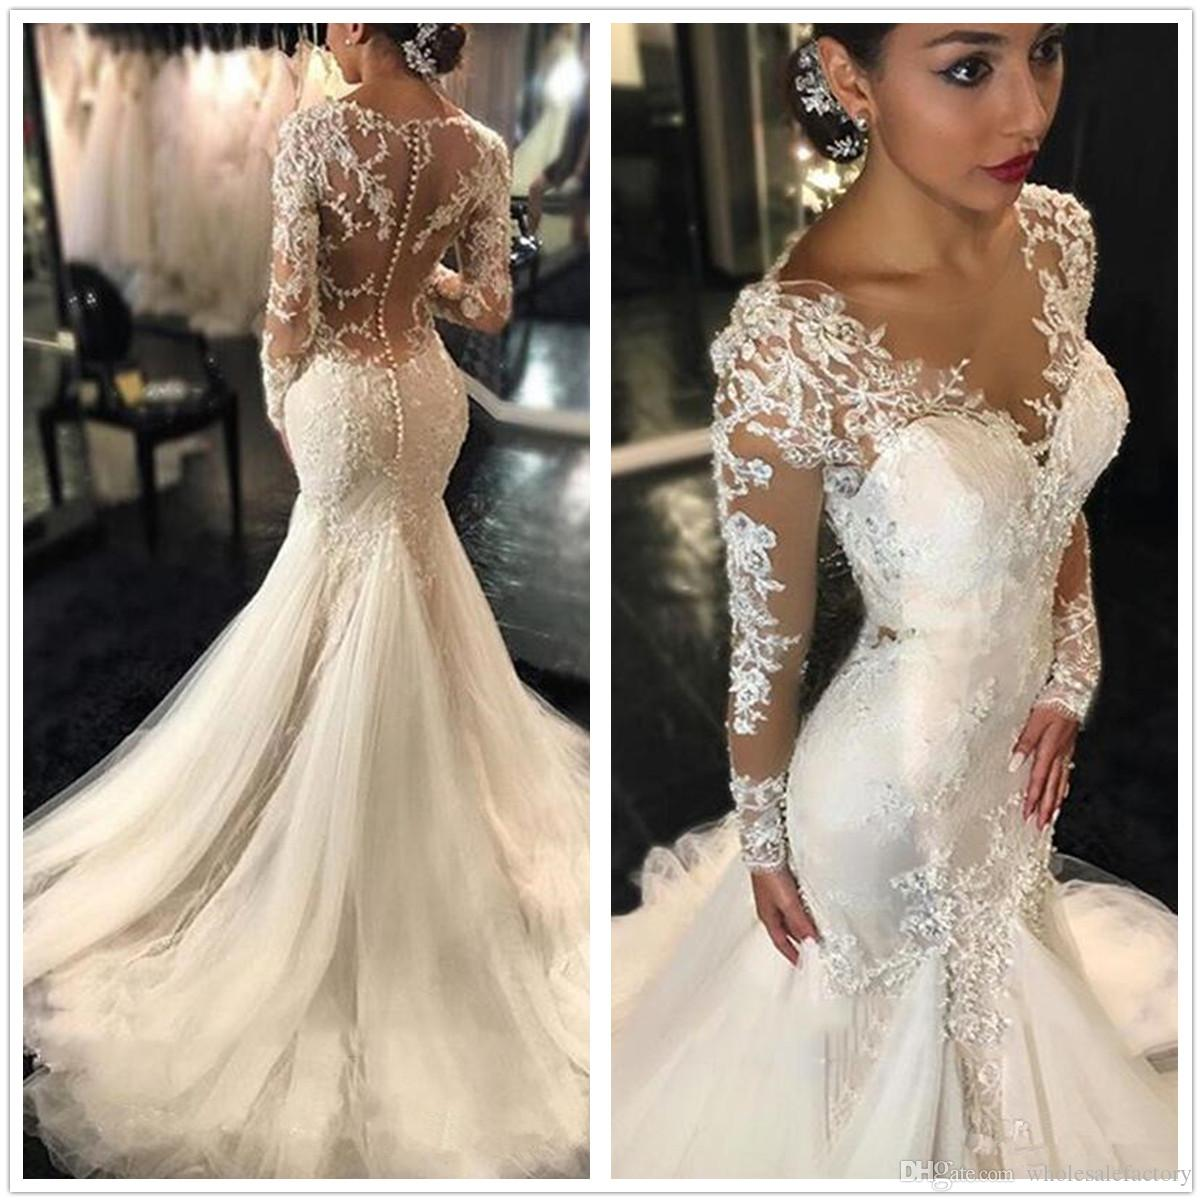 1d747fd024a 2018 Sheer Long Sleeves Lace Mermaid Wedding Dresses Applique Beaded Sheer  Back Court Train Wedding Bridal Gowns With Buttons Tea Length Dresses  Unique ...